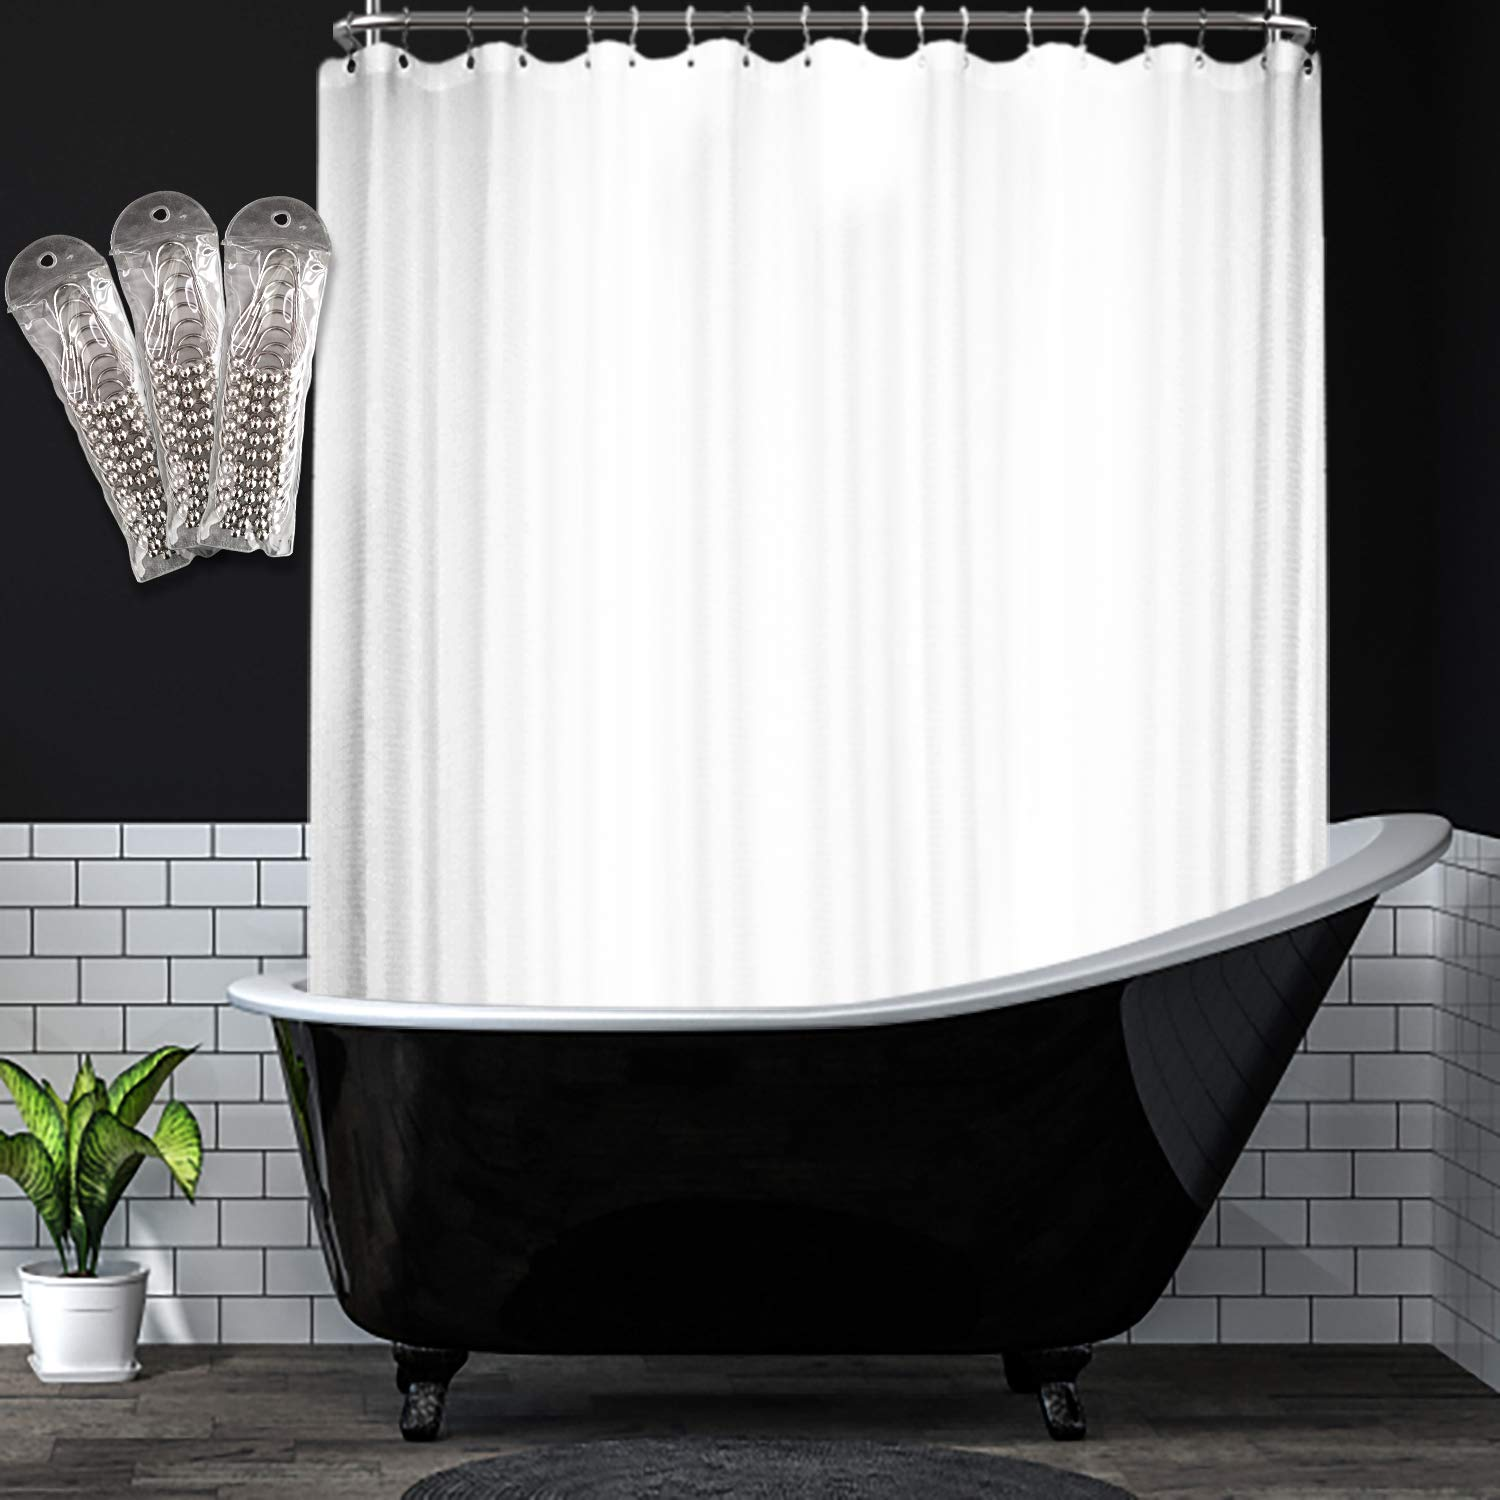 Barossa Design Waffle Weave Clawfoot Tub Shower Curtain 180 x 70 Inch Wrap Around - Heavyweight Fabric, Washable, Water Repellent, with 36 Hooks Set, White, 180x70